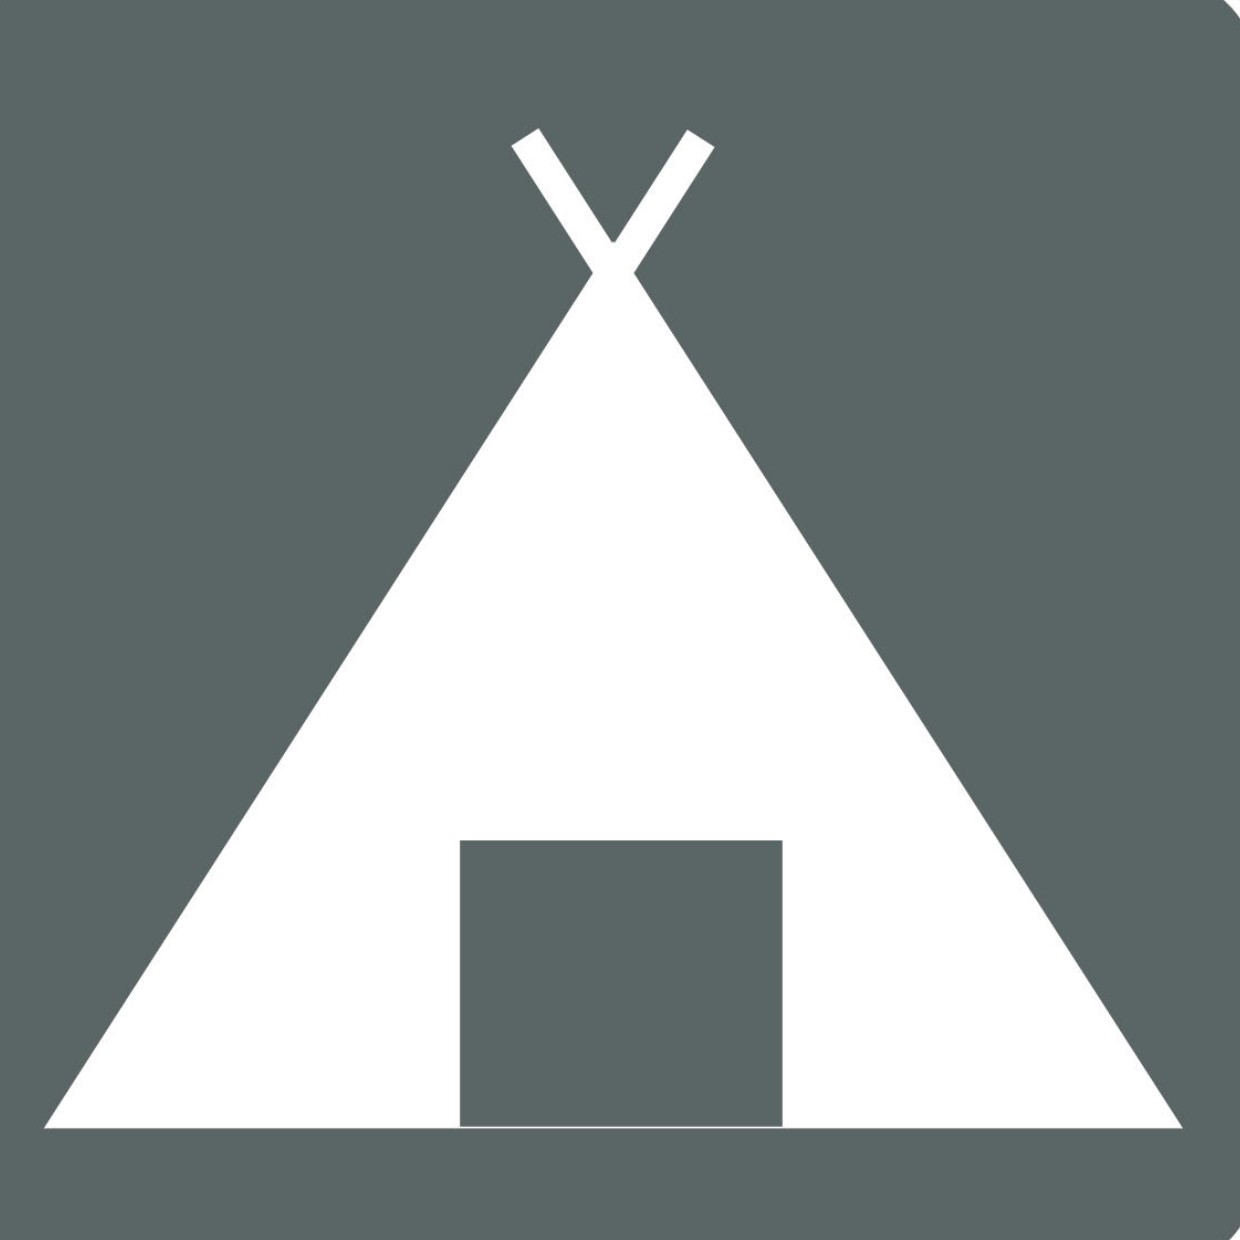 Icon or pictogram depicting a tent, representing camping at base camp in Cape Range National Park